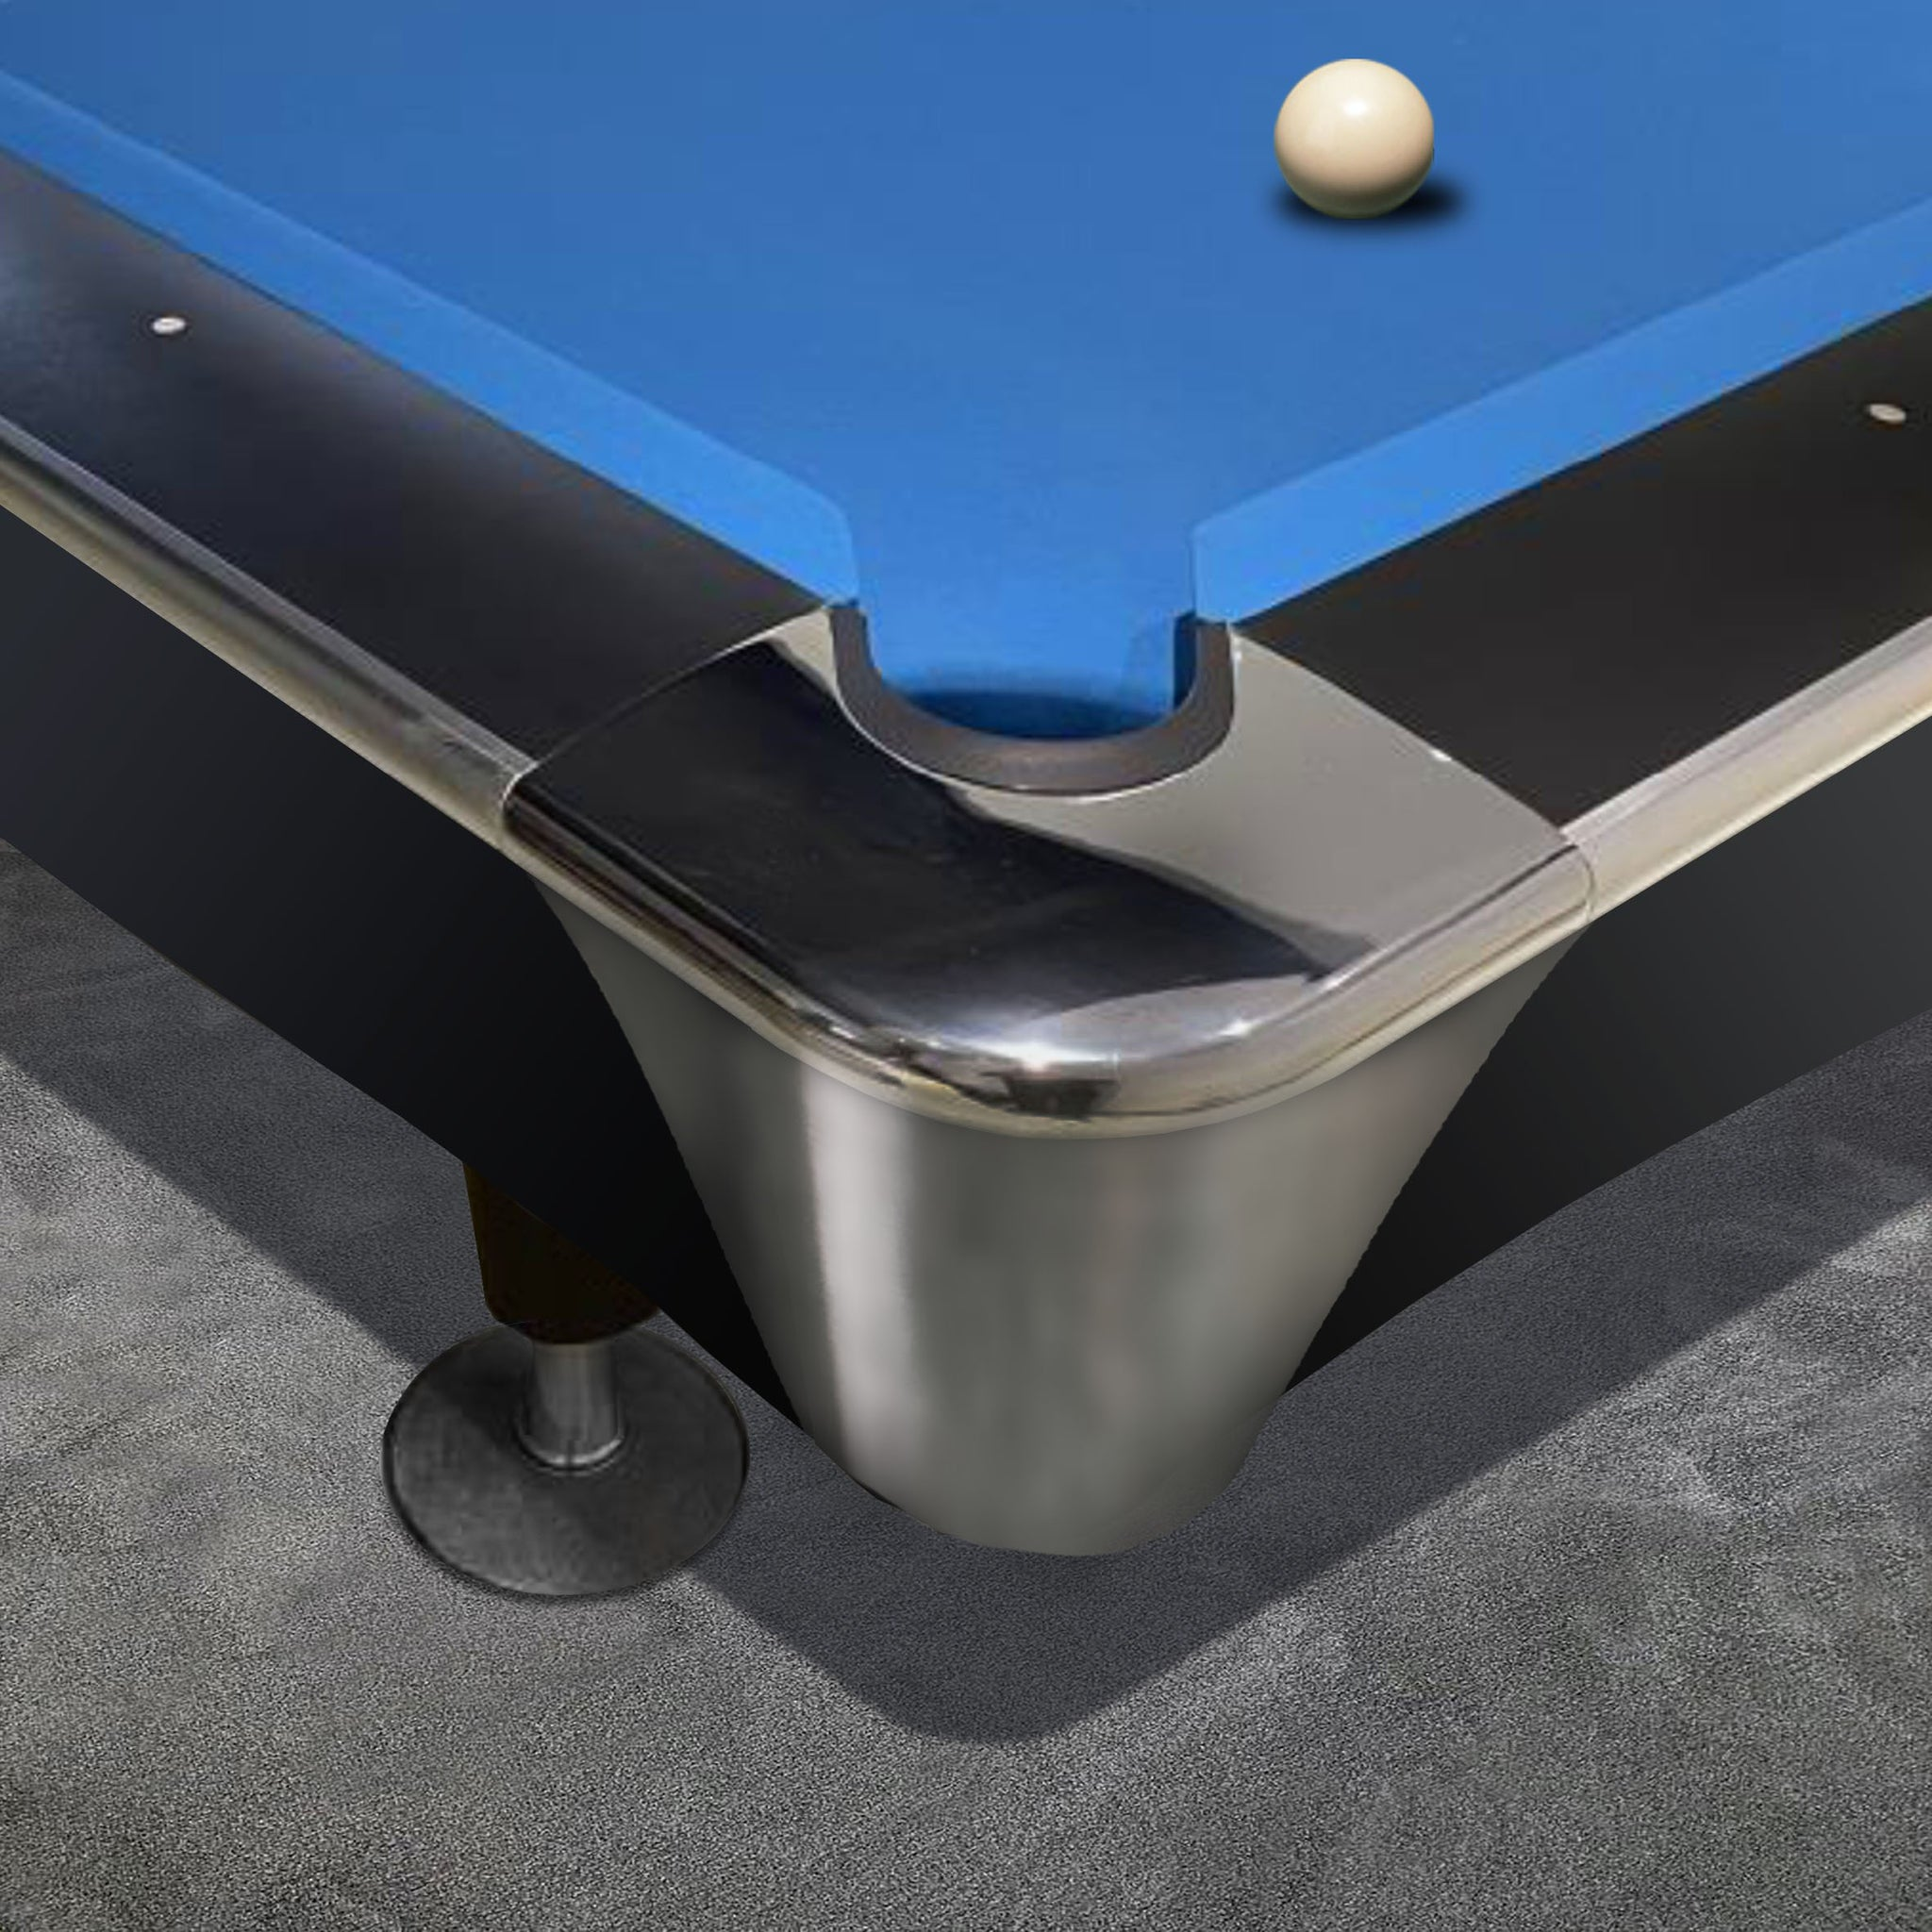 Tournament Professional 8ft American Pool Table Black Finish